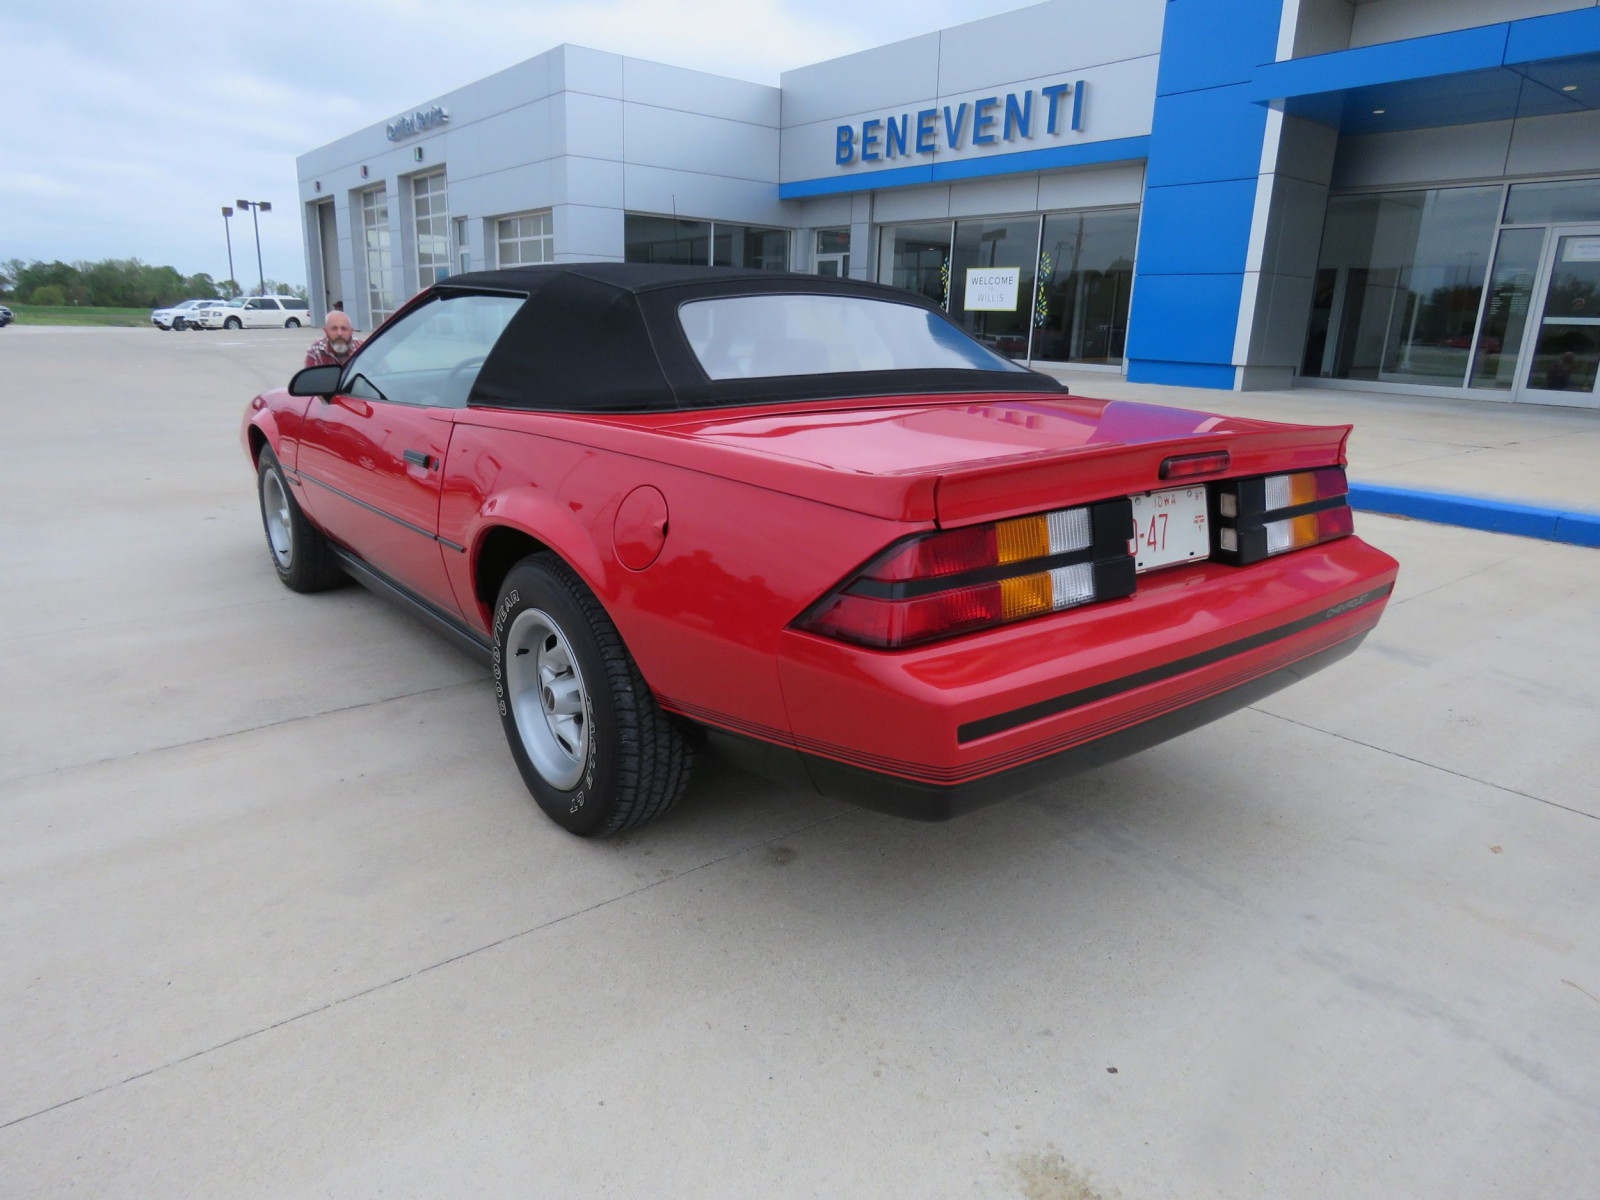 1987 Chevrolet Camaro RS Convertible - Image 13